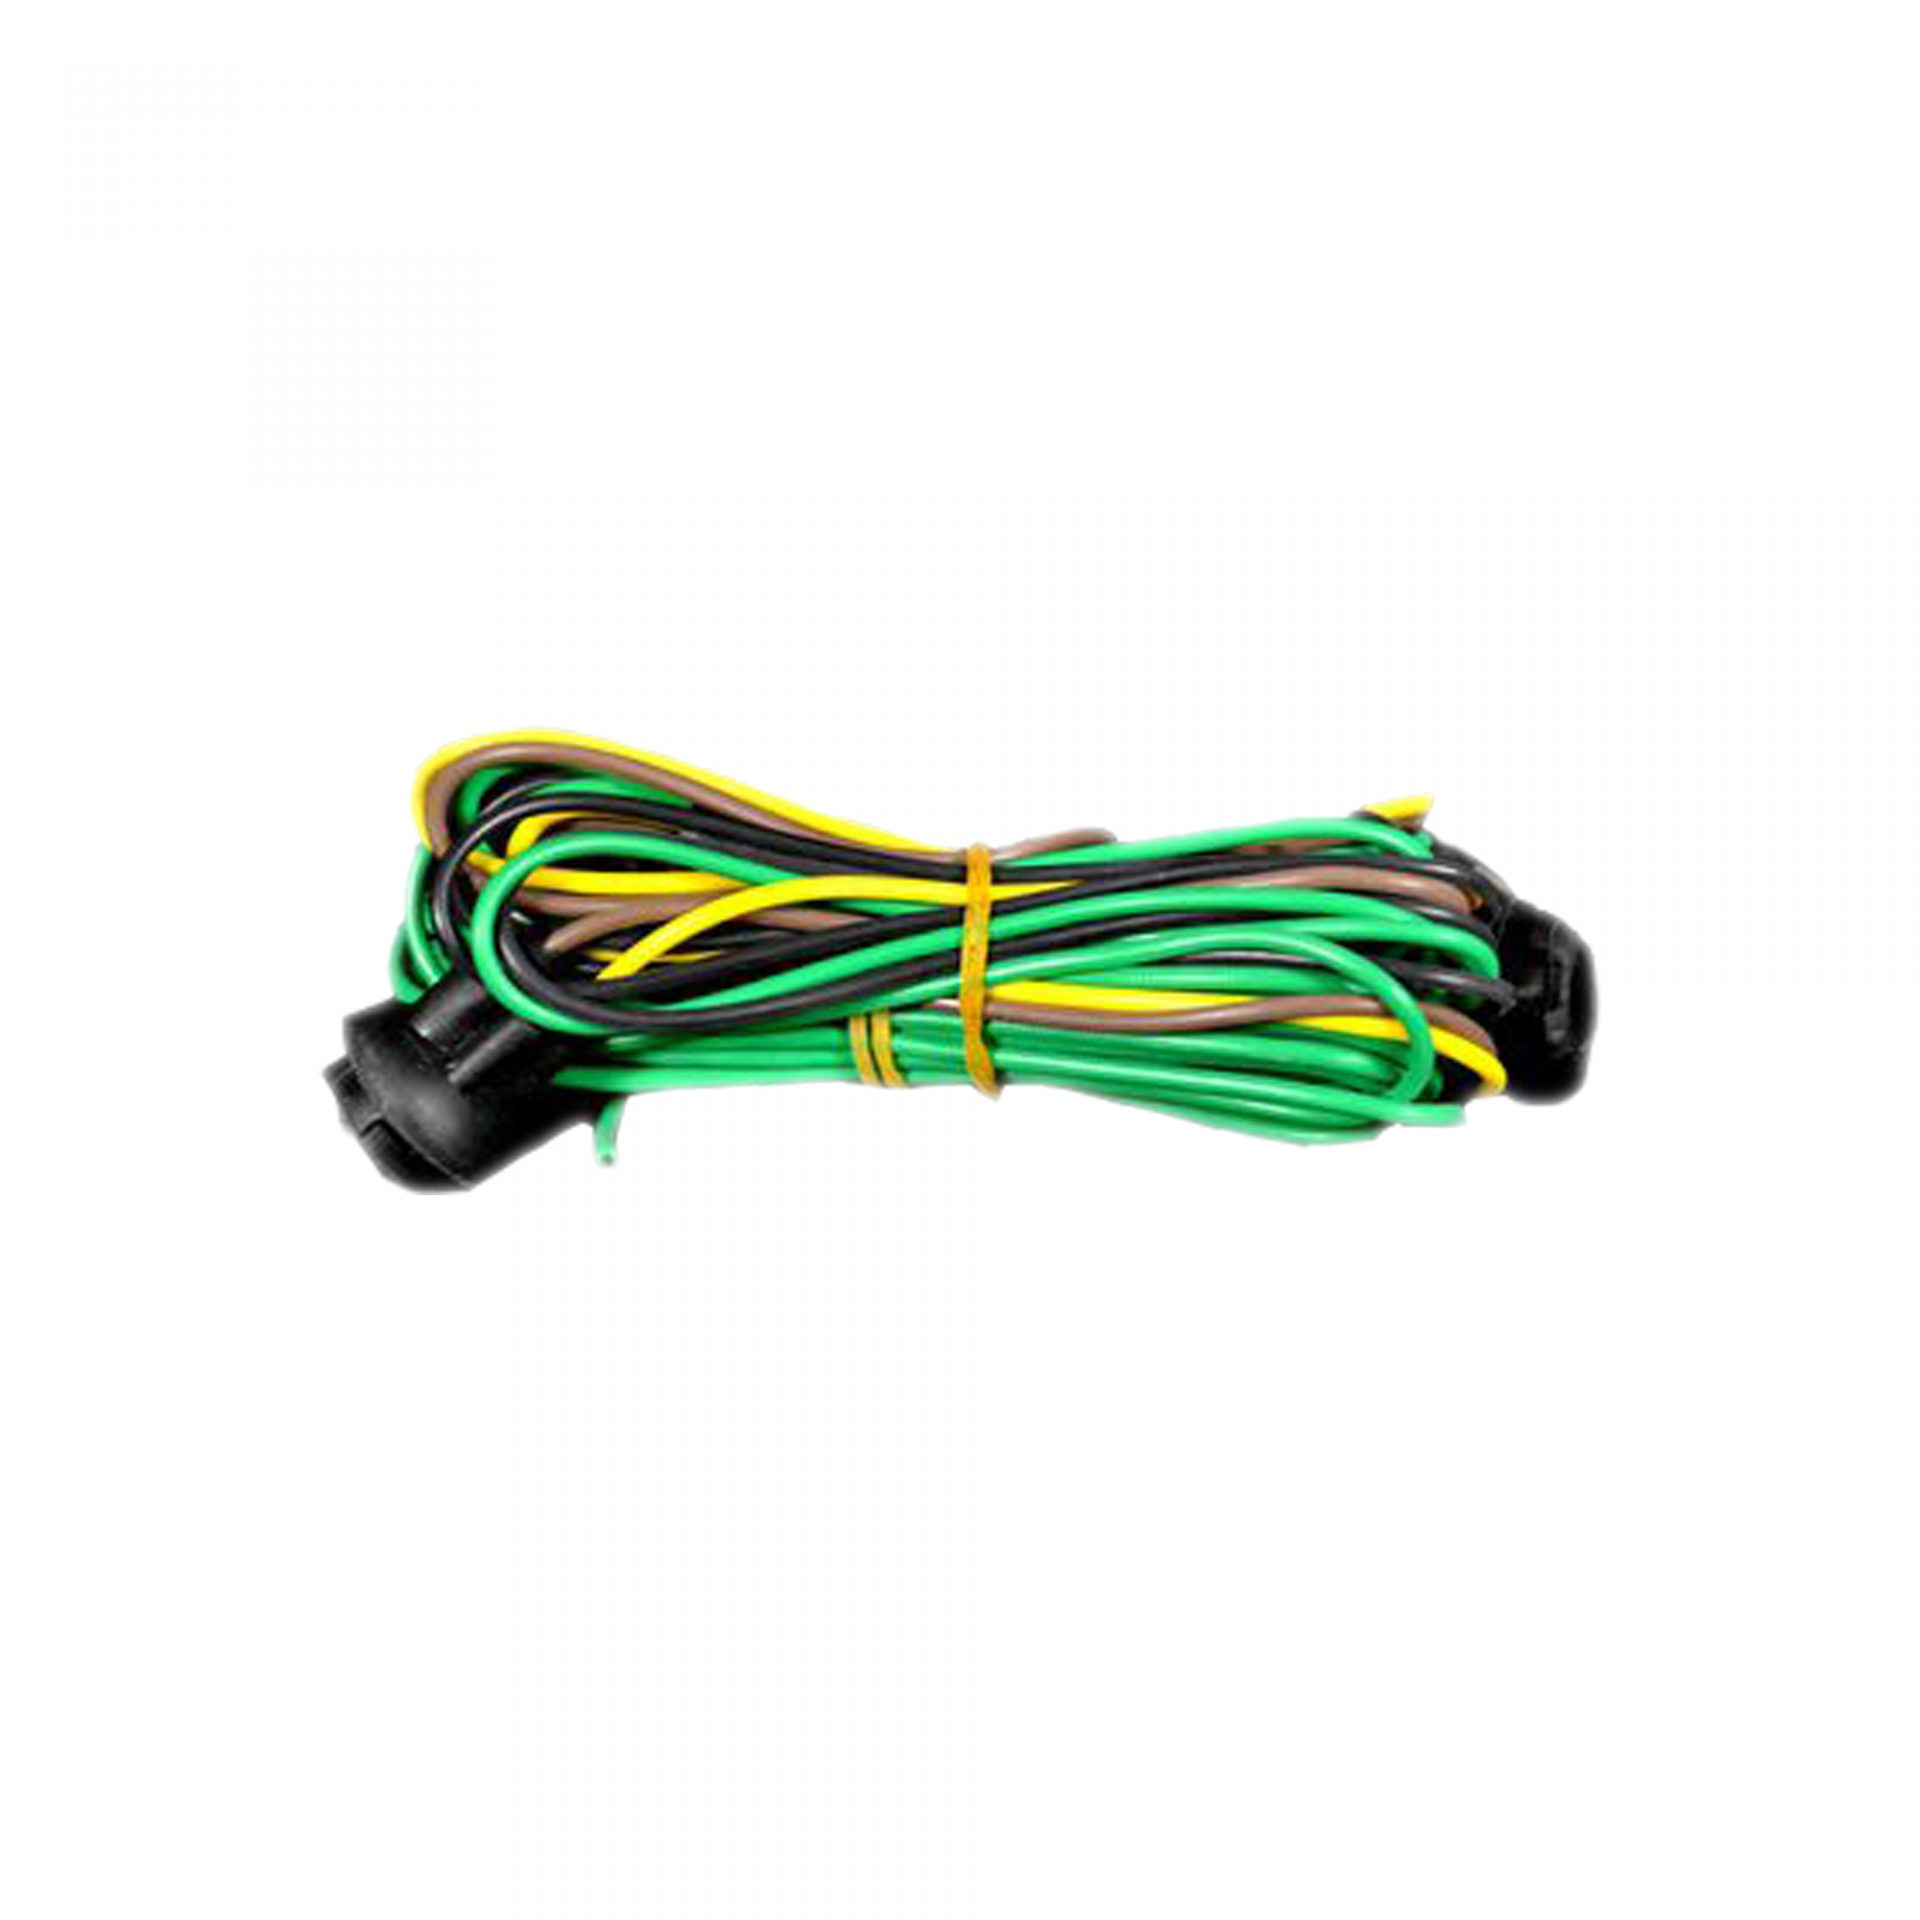 recon 264157y wiring & hardware kit for all part # 264157 cab light kits –  this kit is used to install recon cab lights on a vehicle that did not have